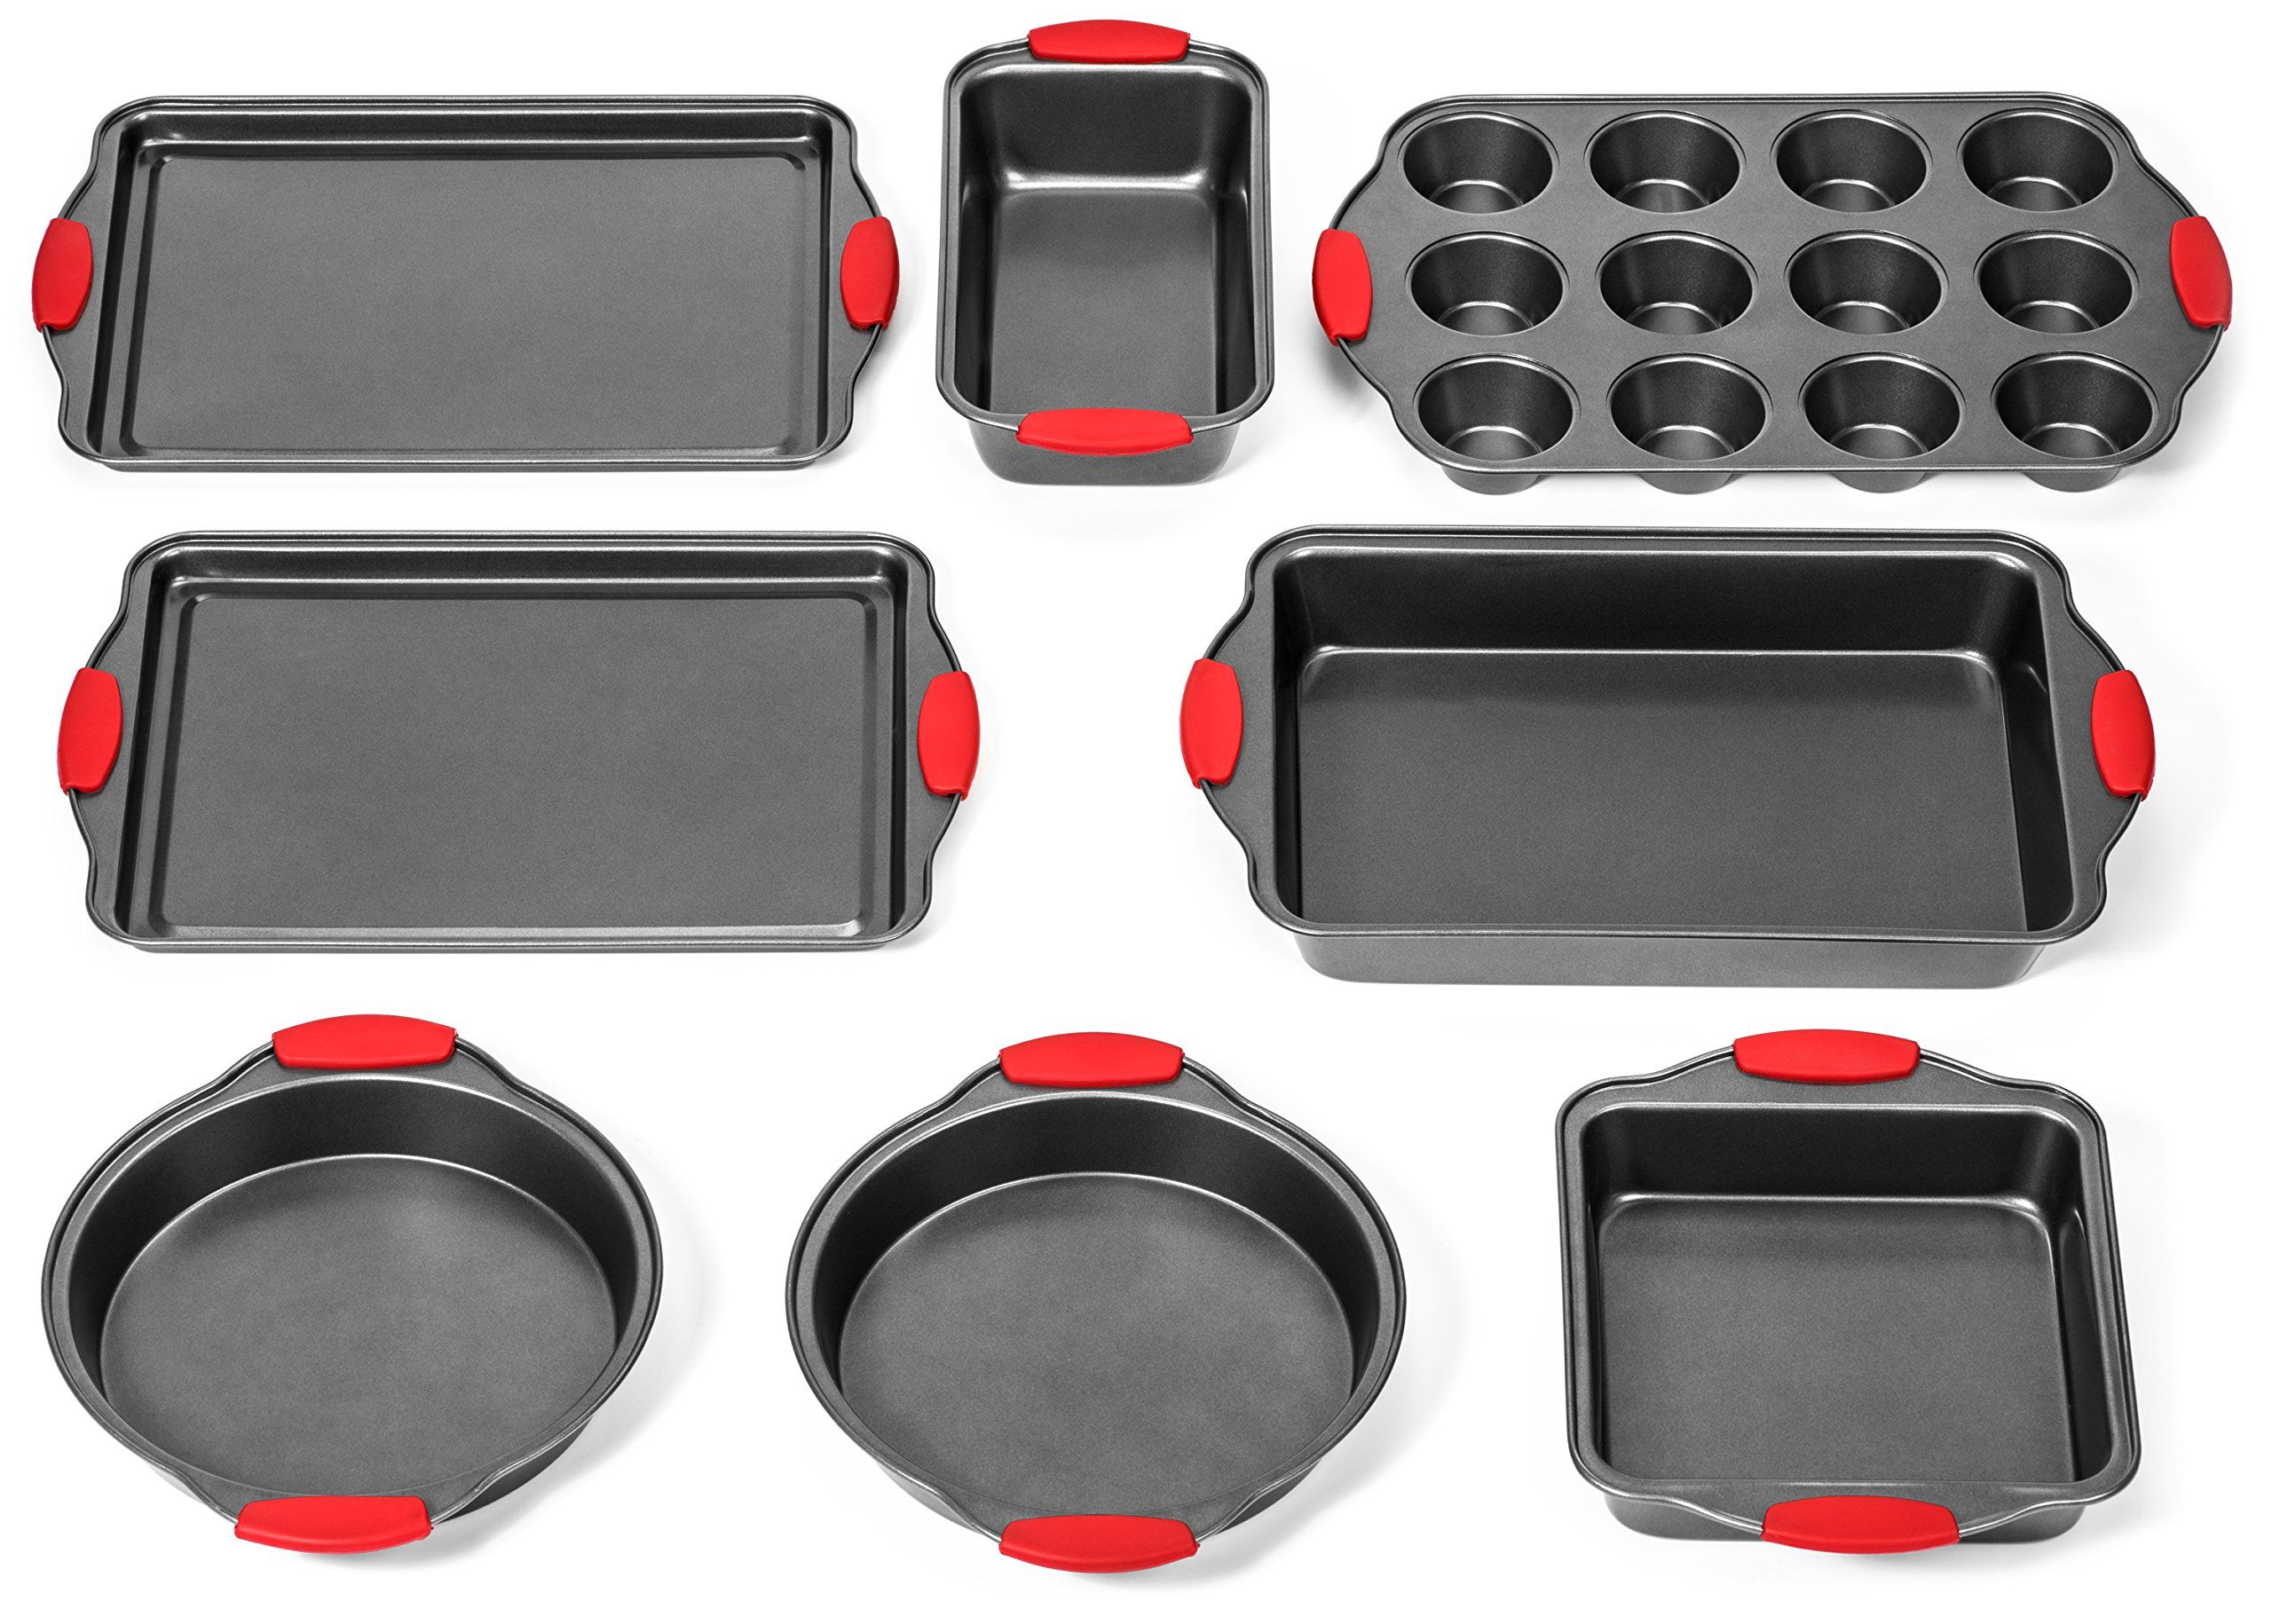 Elite Bakeware 8 Piece Ultra Nonstick Baking Pans Set Bakeware Set